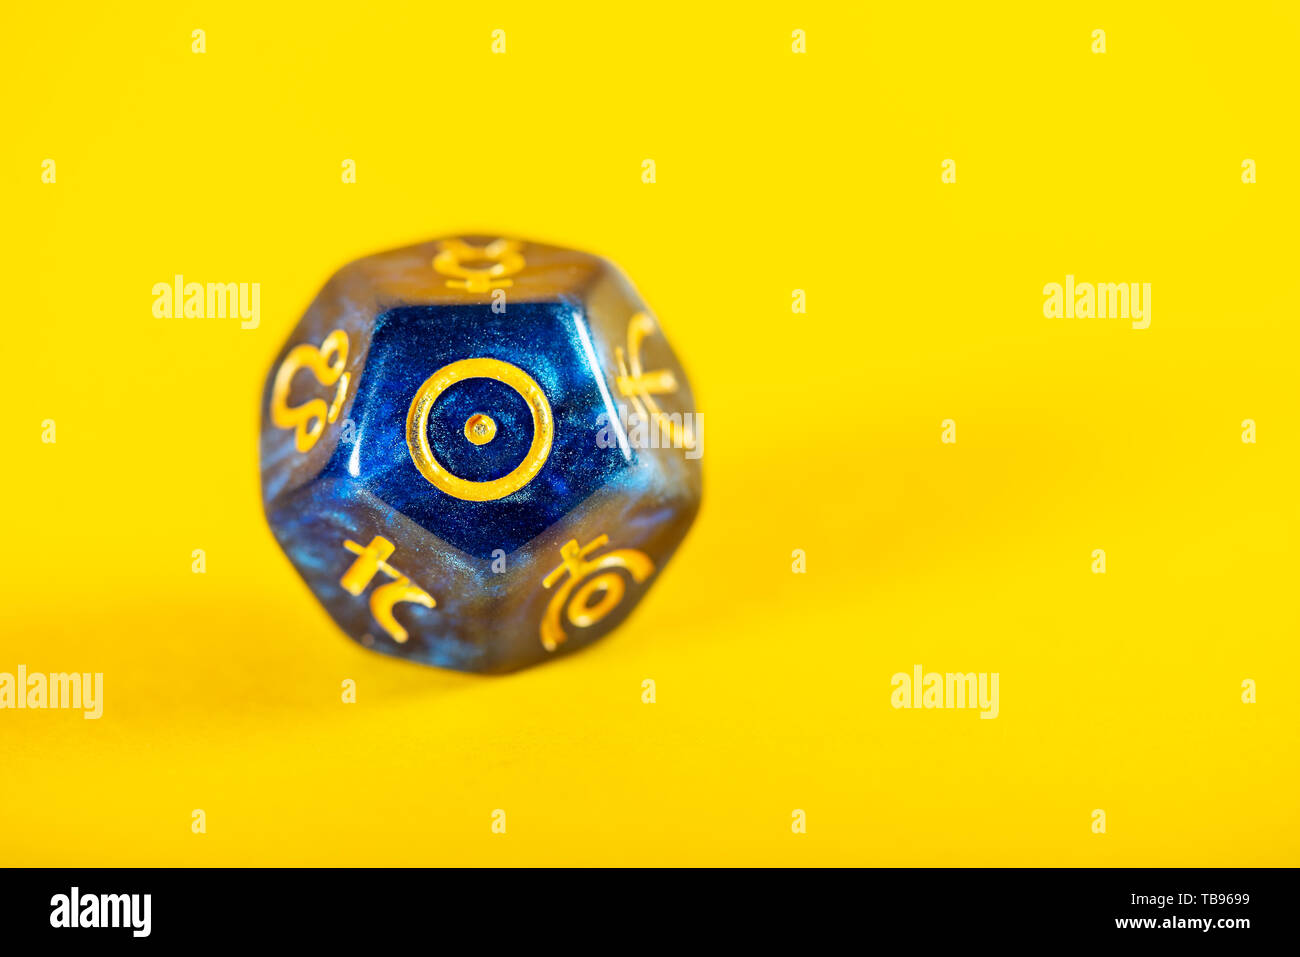 Astrology Dice With Symbol Of The Sun On Yellow Background Stock Photo Alamy